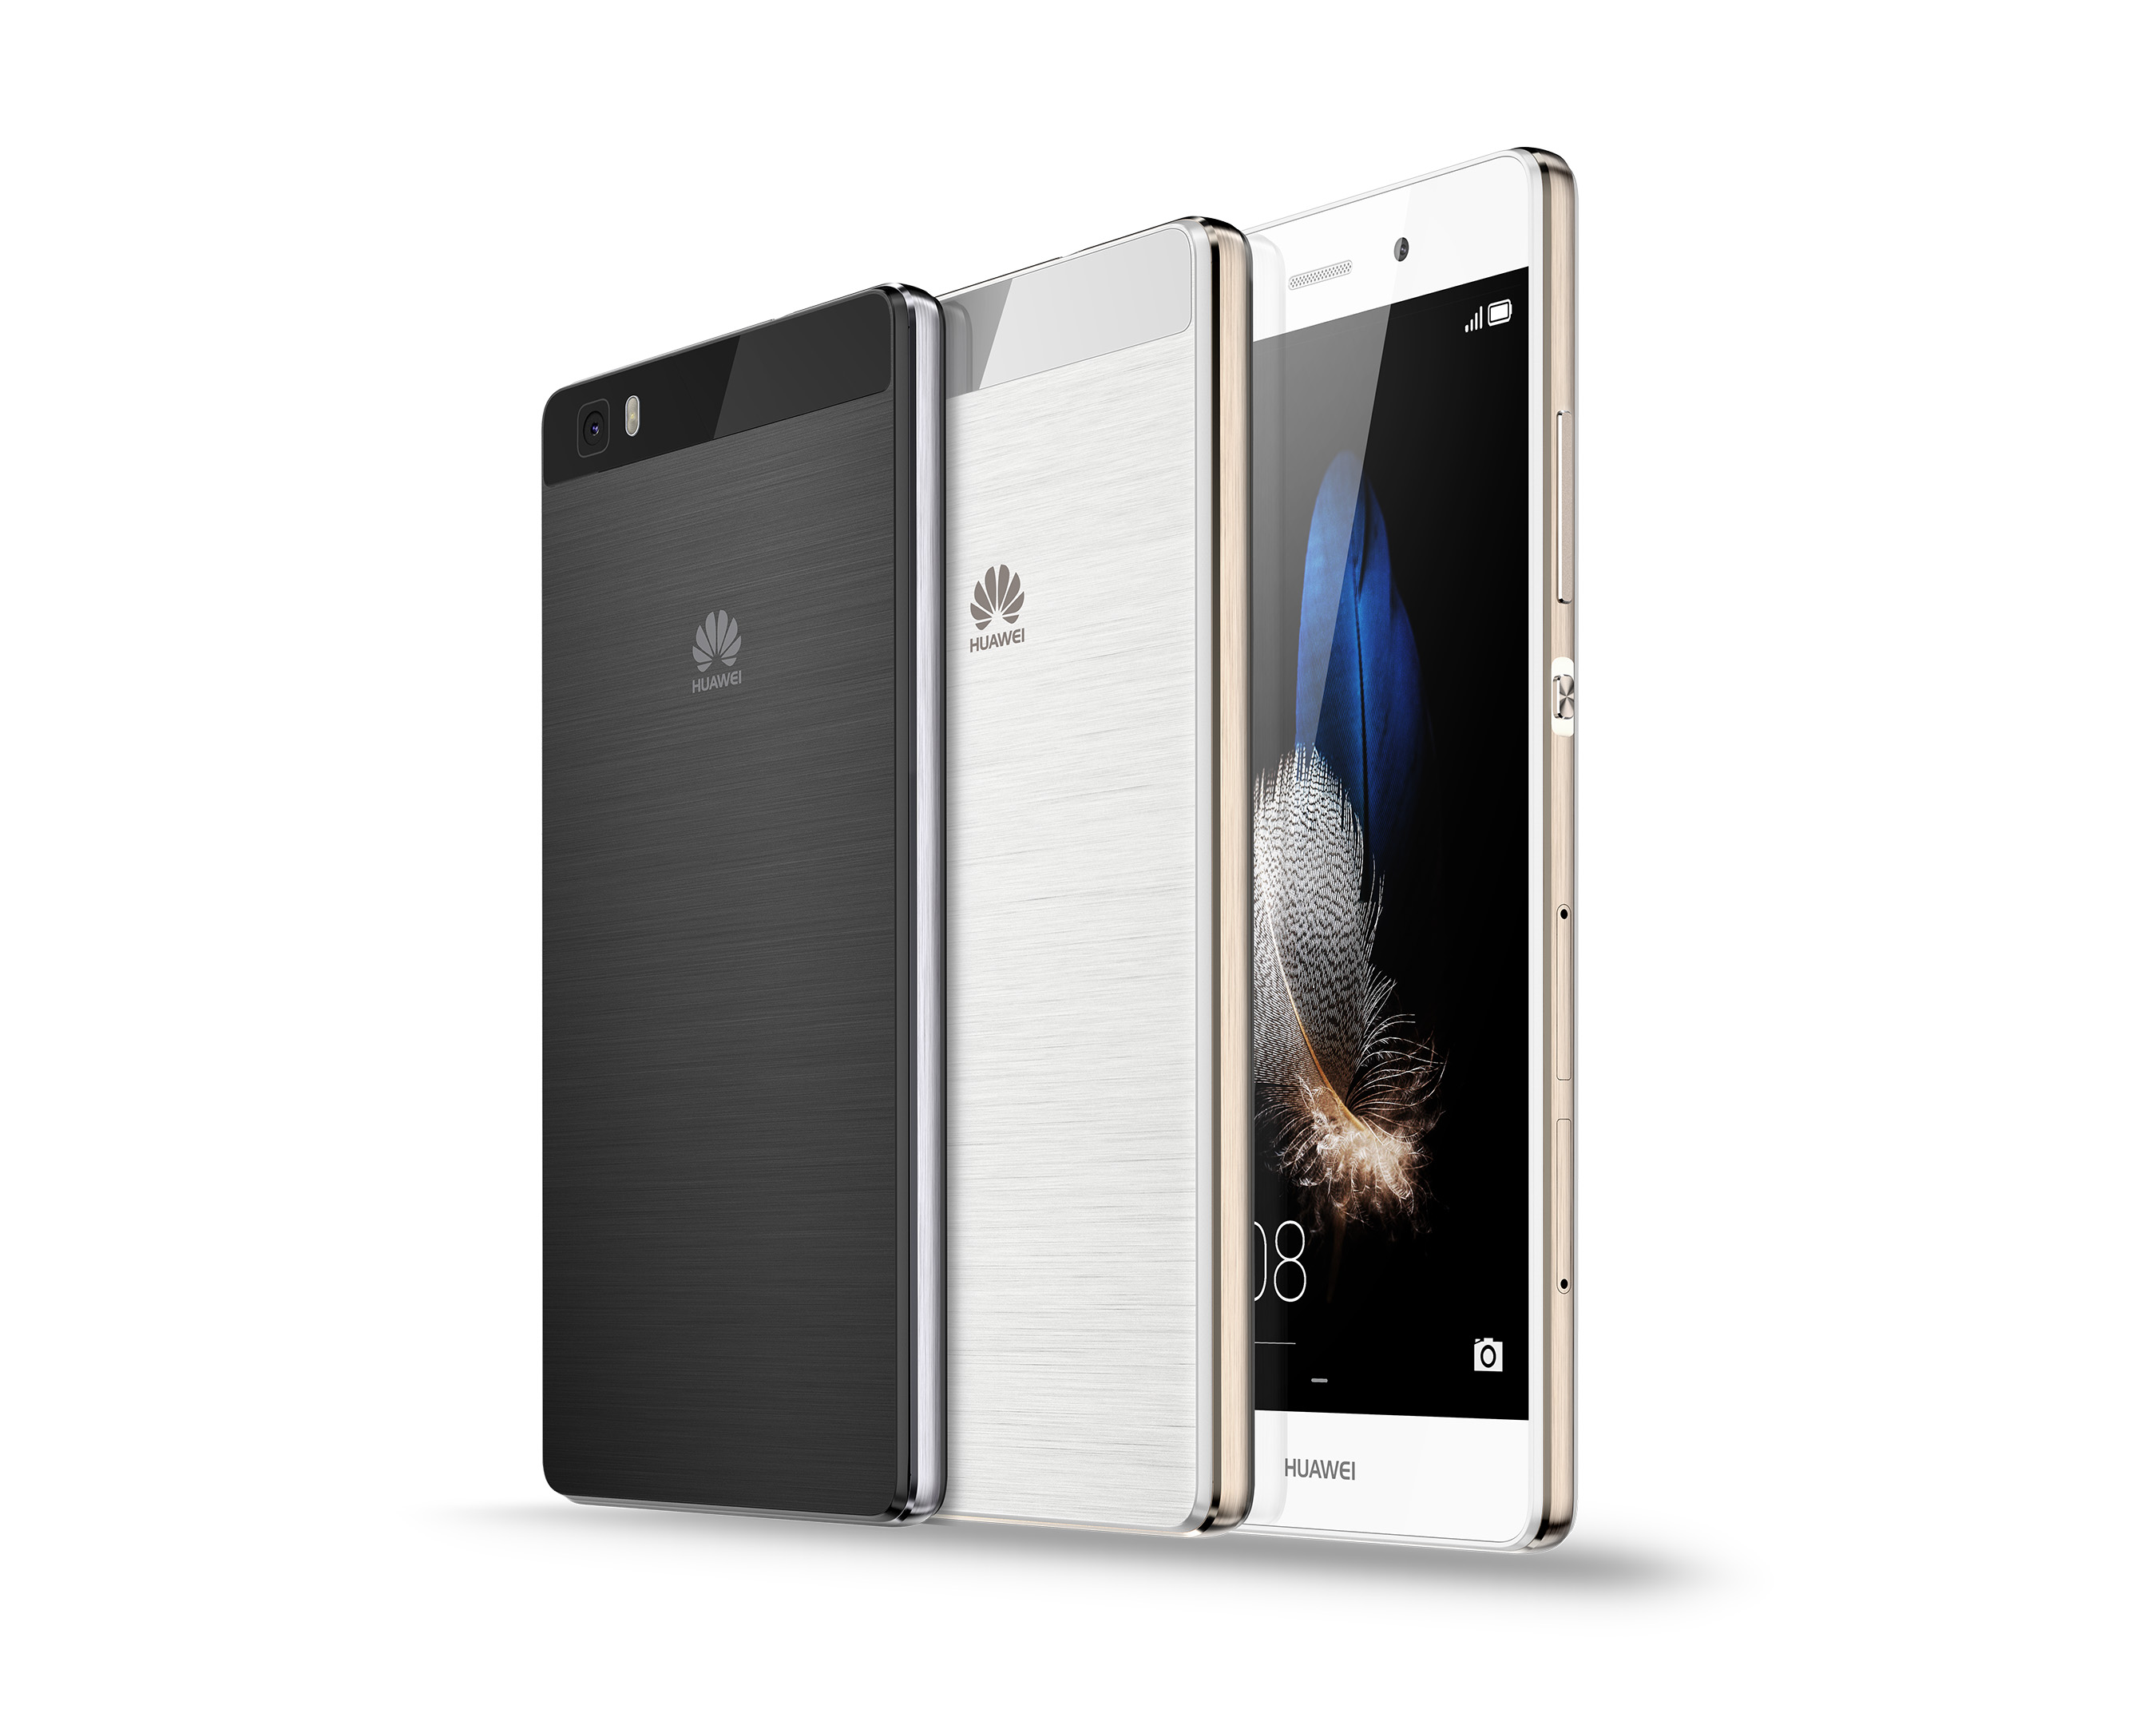 huawei brings great design within reach with new unlocked p8 lite smartphone. Black Bedroom Furniture Sets. Home Design Ideas